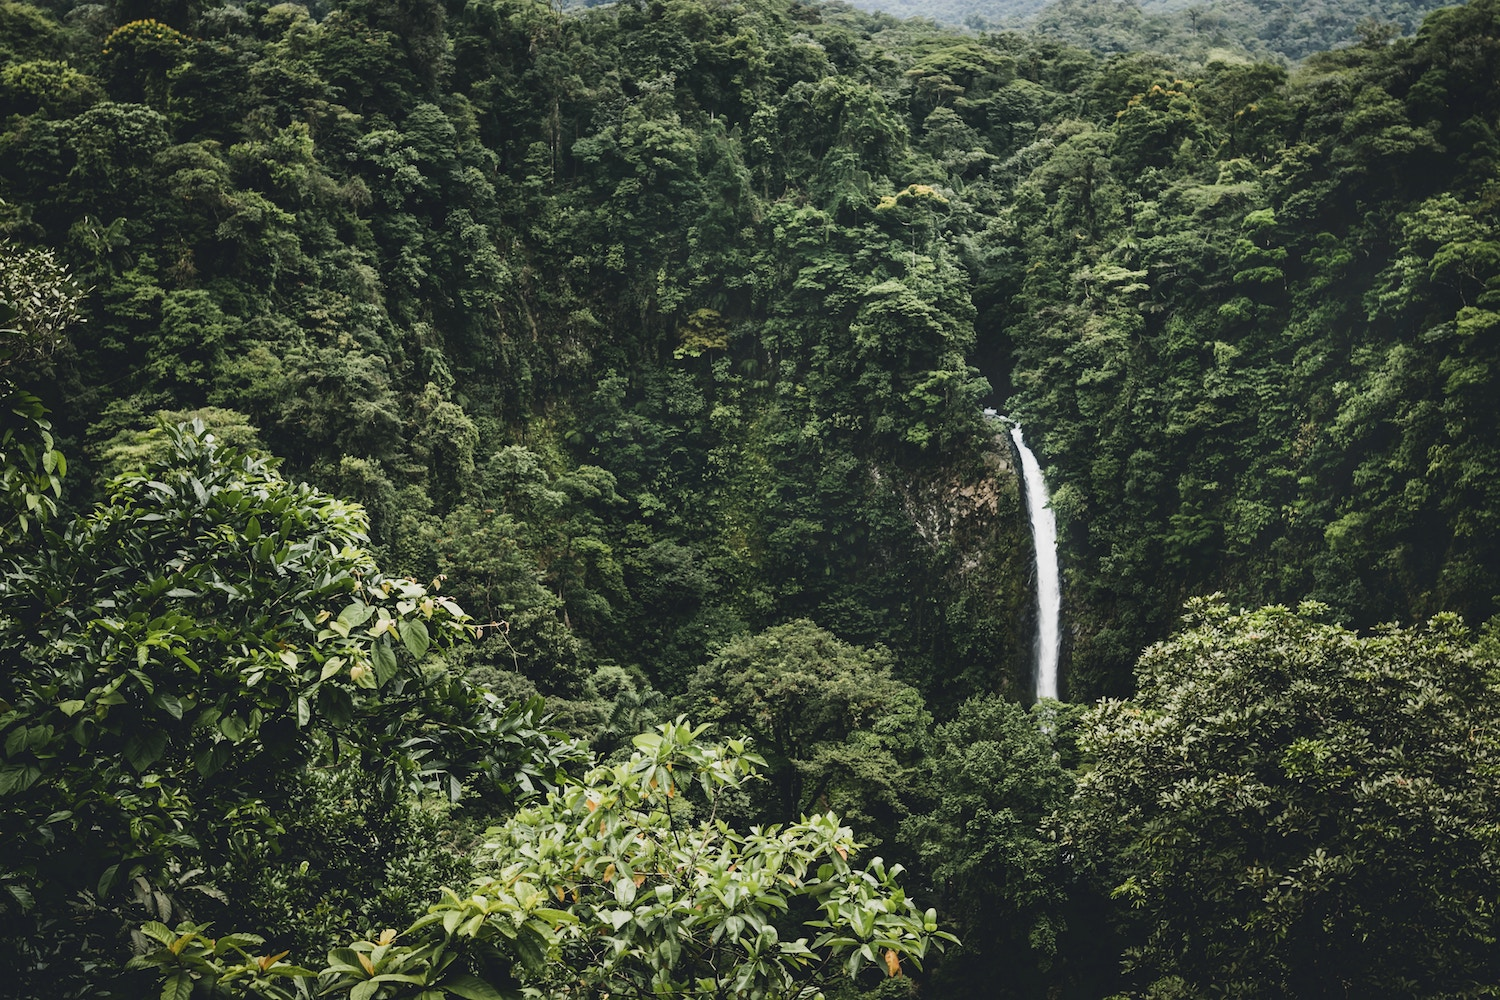 Costa Rica doubles its forest cover in 30 years